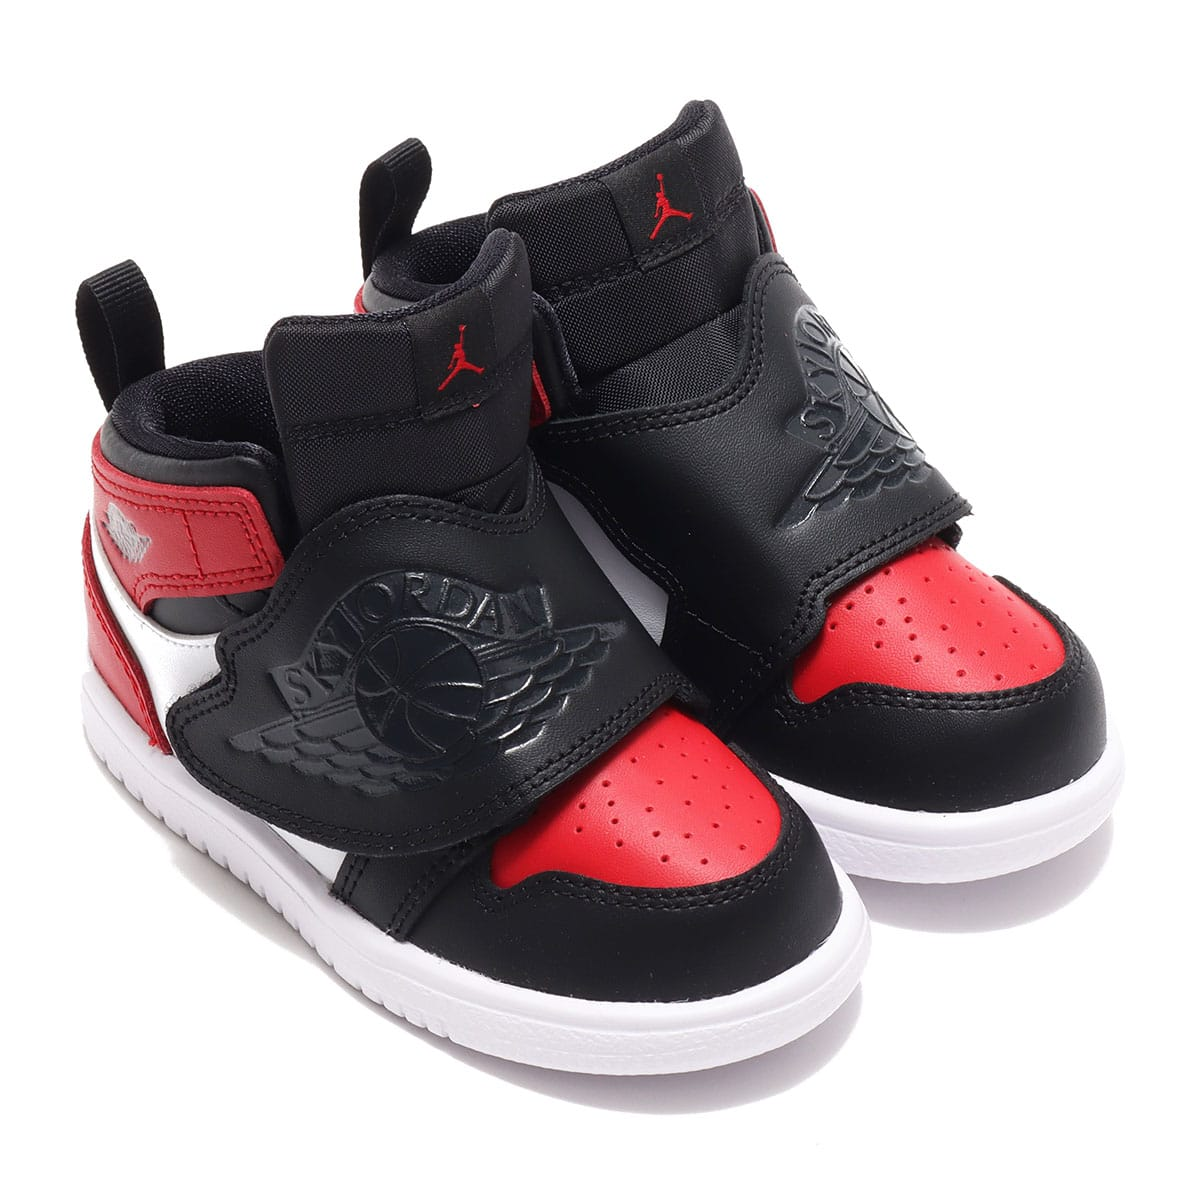 JORDAN BRAND SKY JORDAN 1 (TD) BLACK/ANTHRACITE-VARSITY RED-WHITE 20FA-I_photo_large